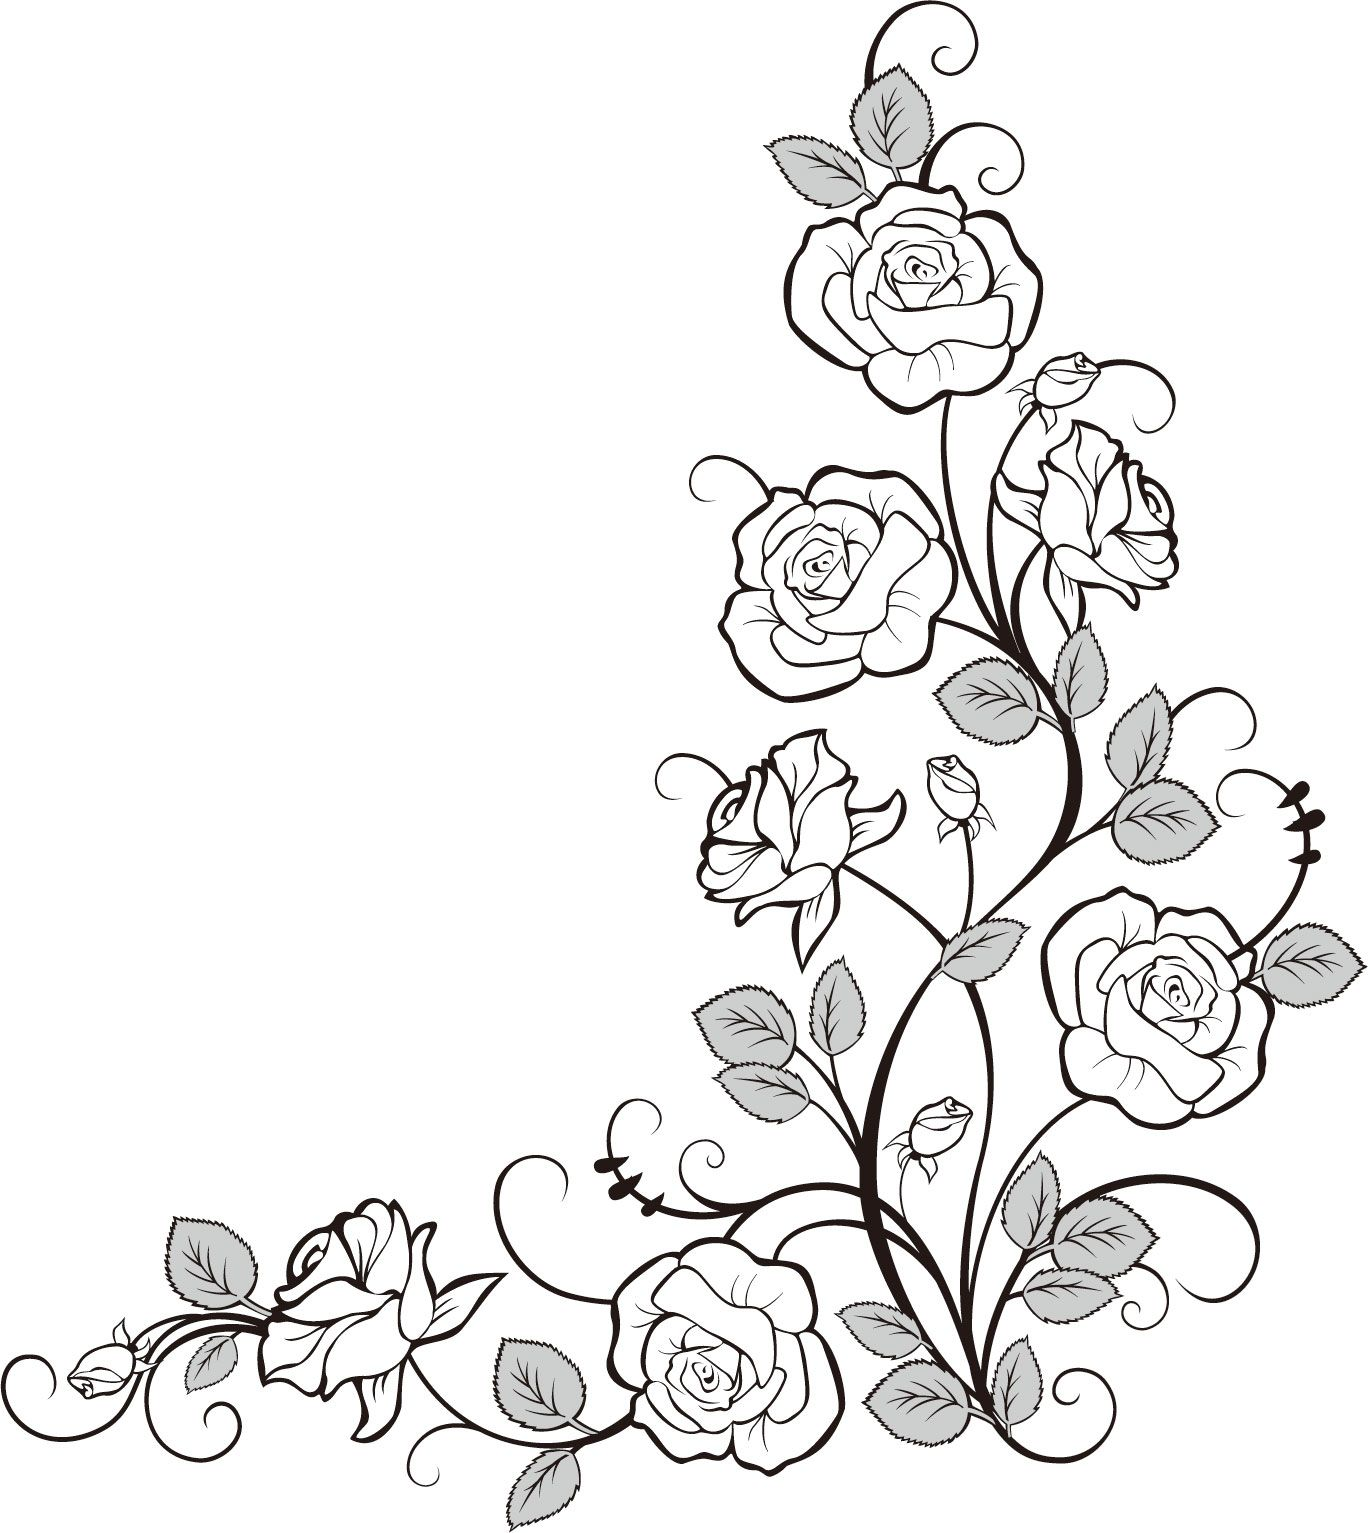 Line Drawing Flower Borders : Flower doodle line art pinterest doodles